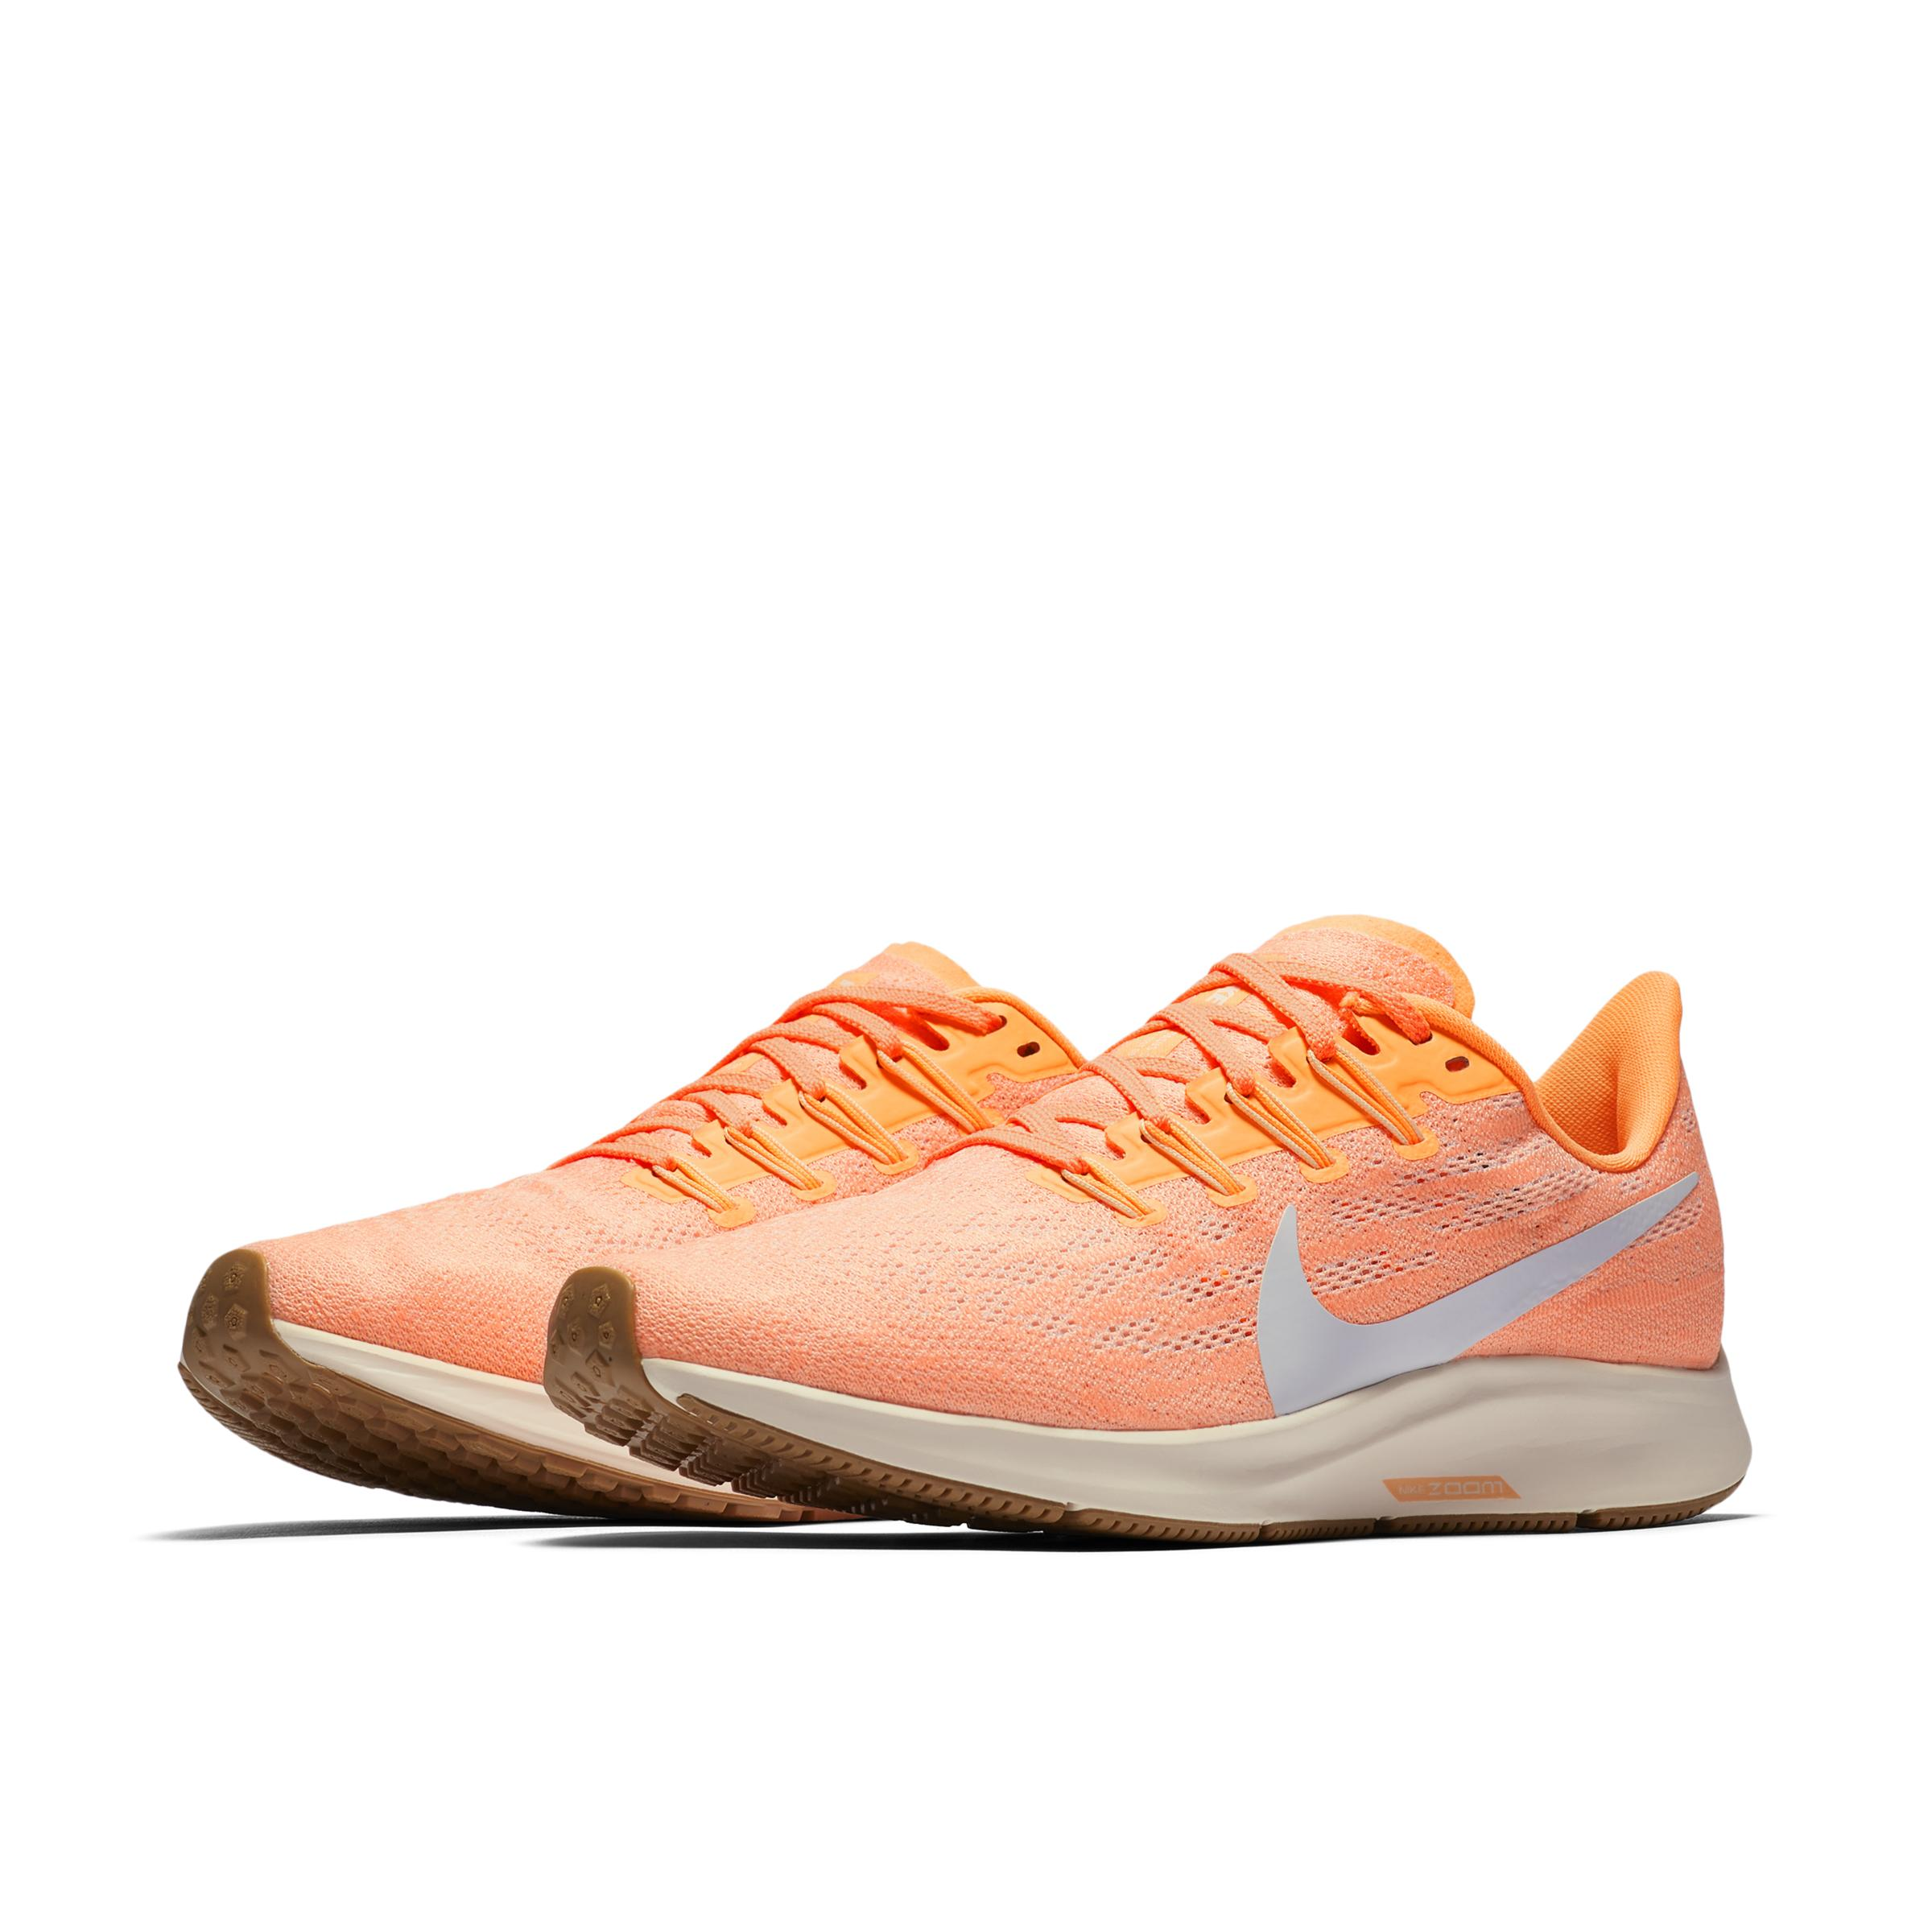 Air Zoom Pegasus 36 Zapatillas de running Nike de color Naranja